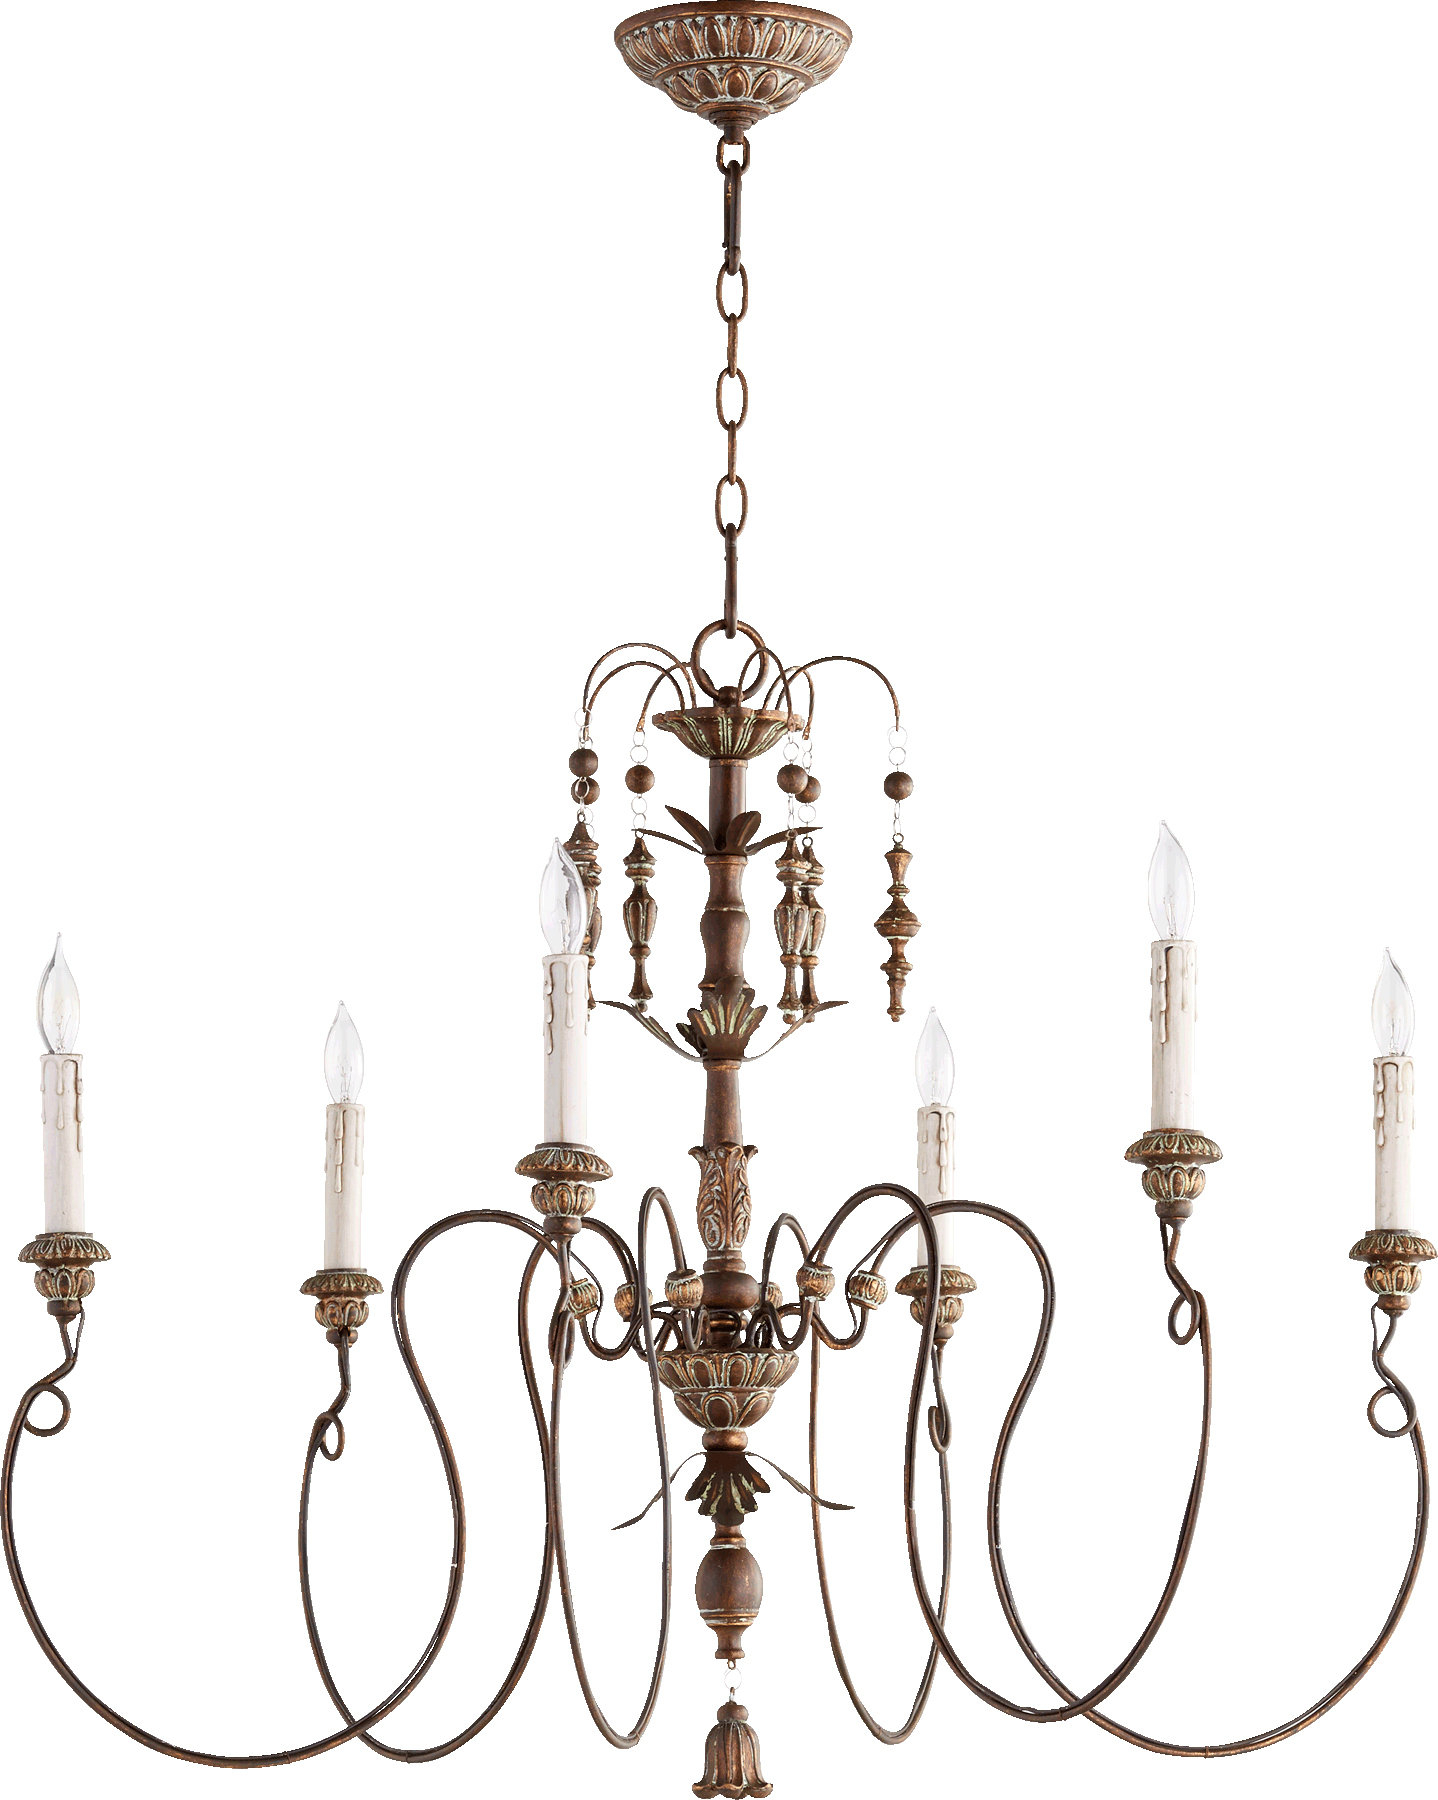 Paladino 6 Light Chandelier Within Paladino 6 Light Chandeliers (View 5 of 30)